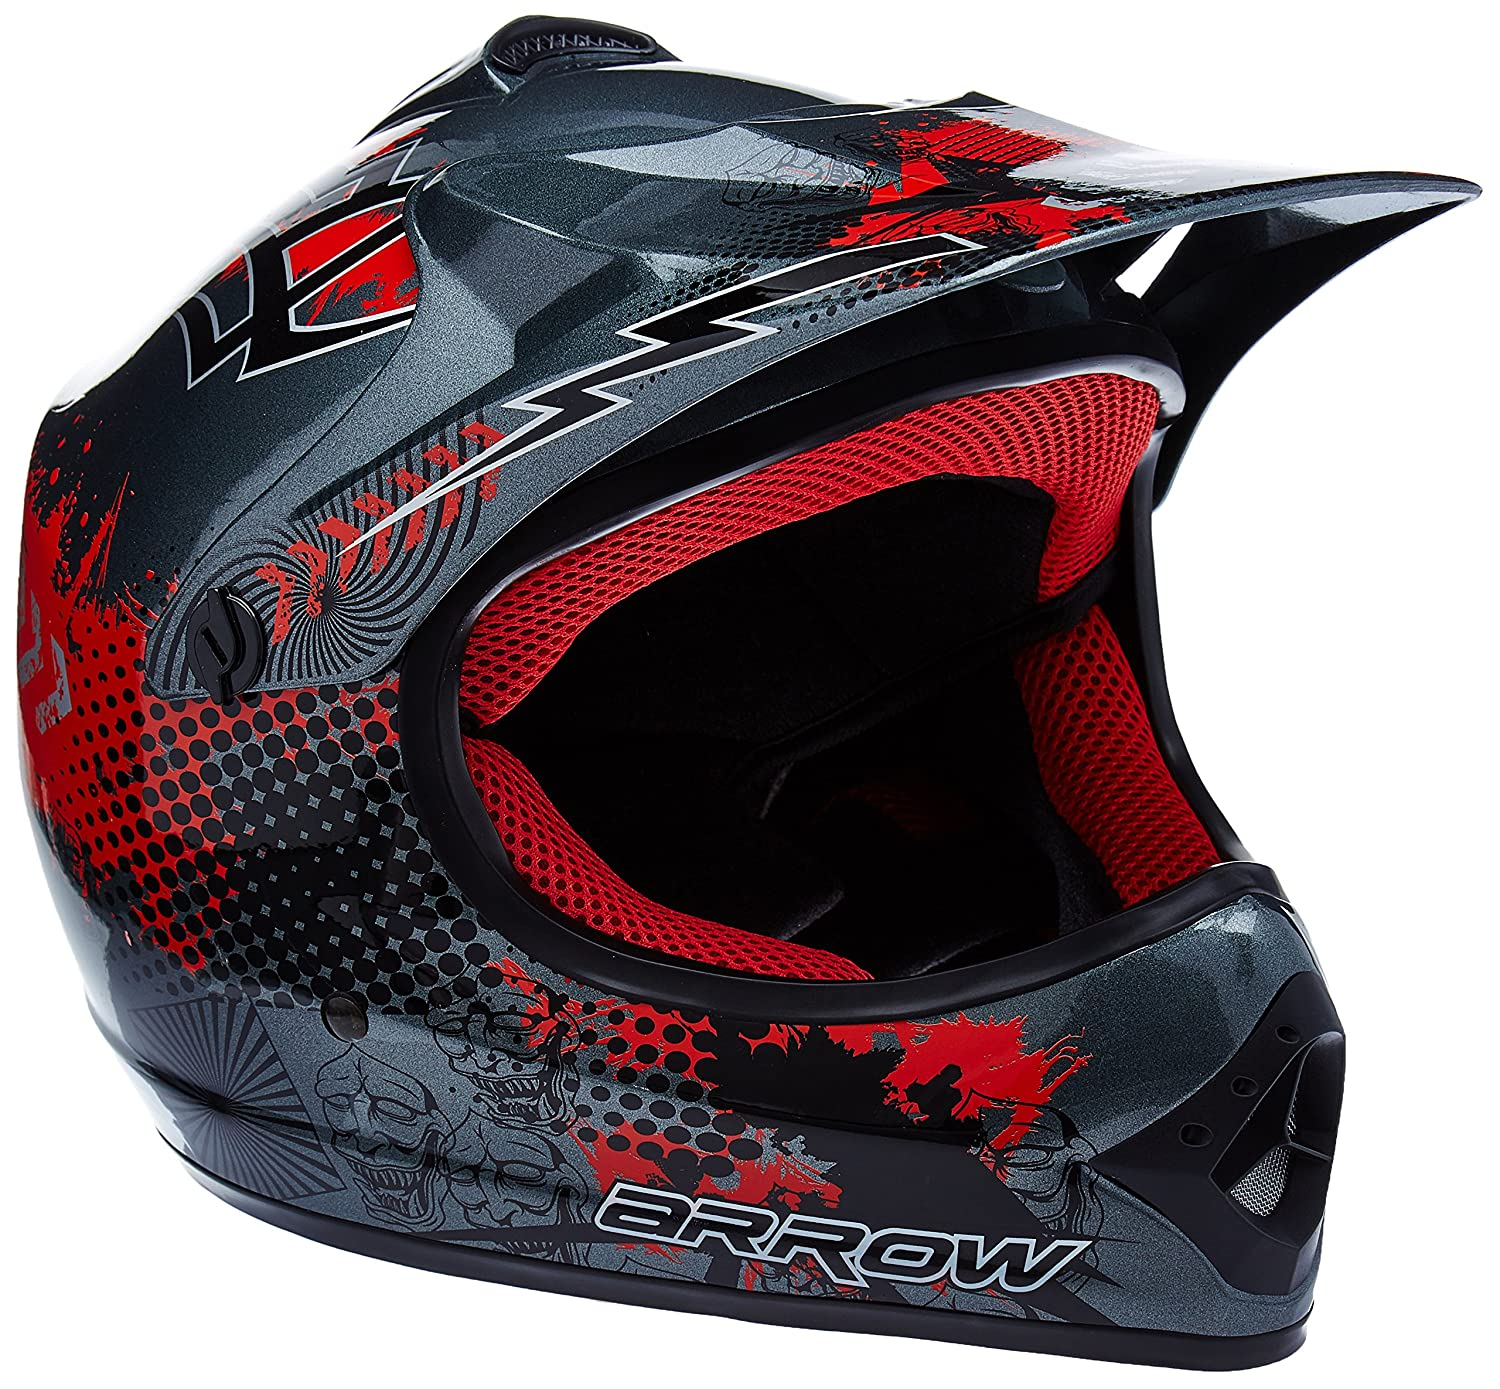 "red 57-58cm Armor /· AKC-49 /""Red/"" /· Kids-Cross Helmet /· Enduro Off-Road MX Motorcycle Child Moto-Cross-Helmet /· DOT certified /· Click-n-Secure/™ Clip /· Carrier Bag /· L"